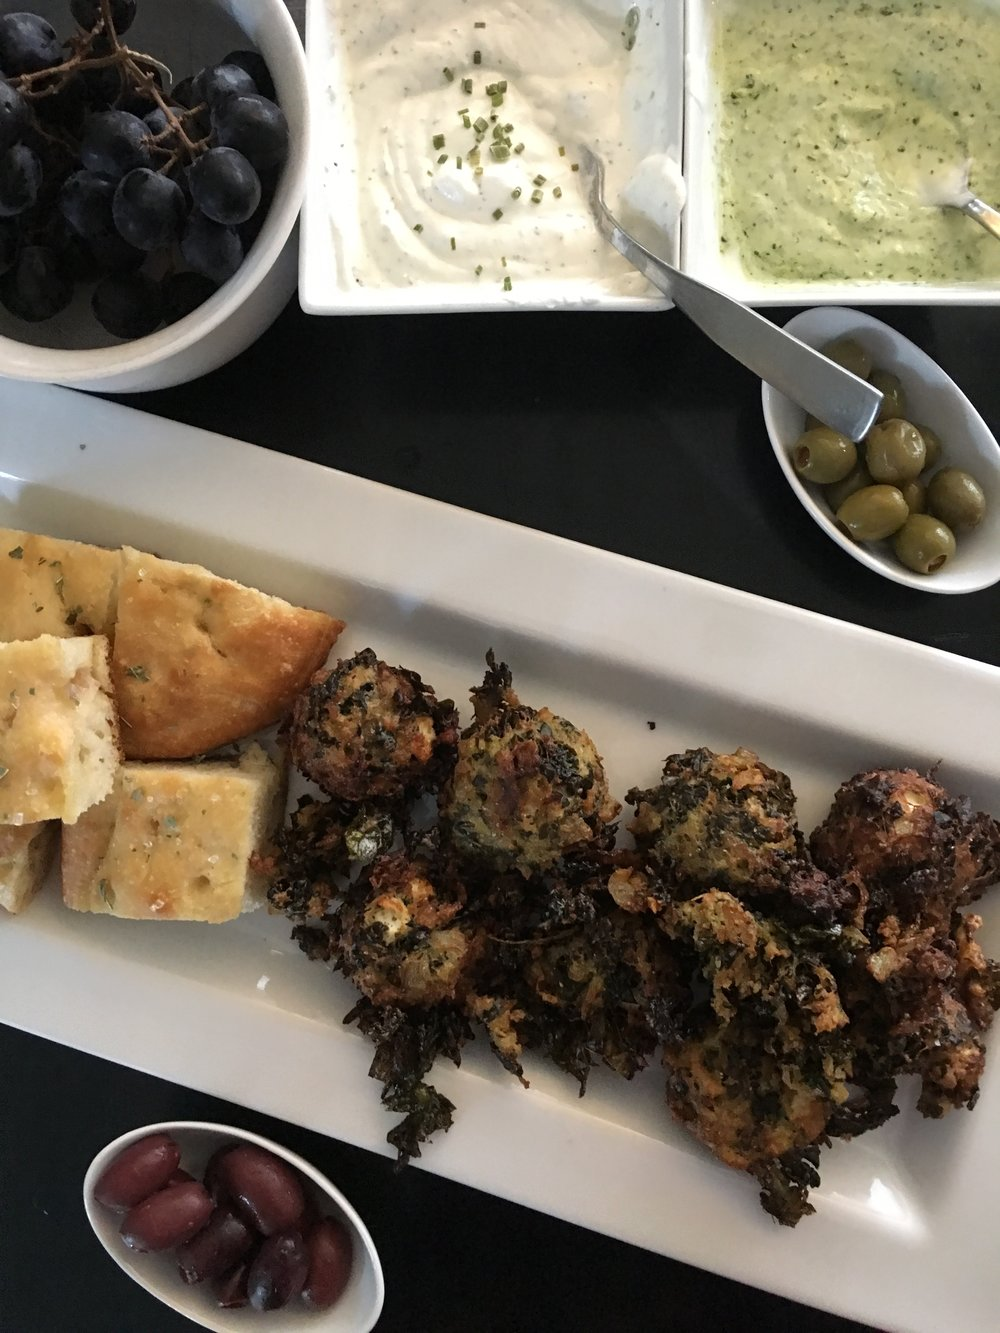 This doesn't look super pretty, but it's crazy delish!  Kale balls  with more focacc, grapes, and kalamata and green olives. The sauces are (left) sour cream + yogurt with Penzey's Brad Street mix and (right) yogurt mixed with homemade basil pesto.